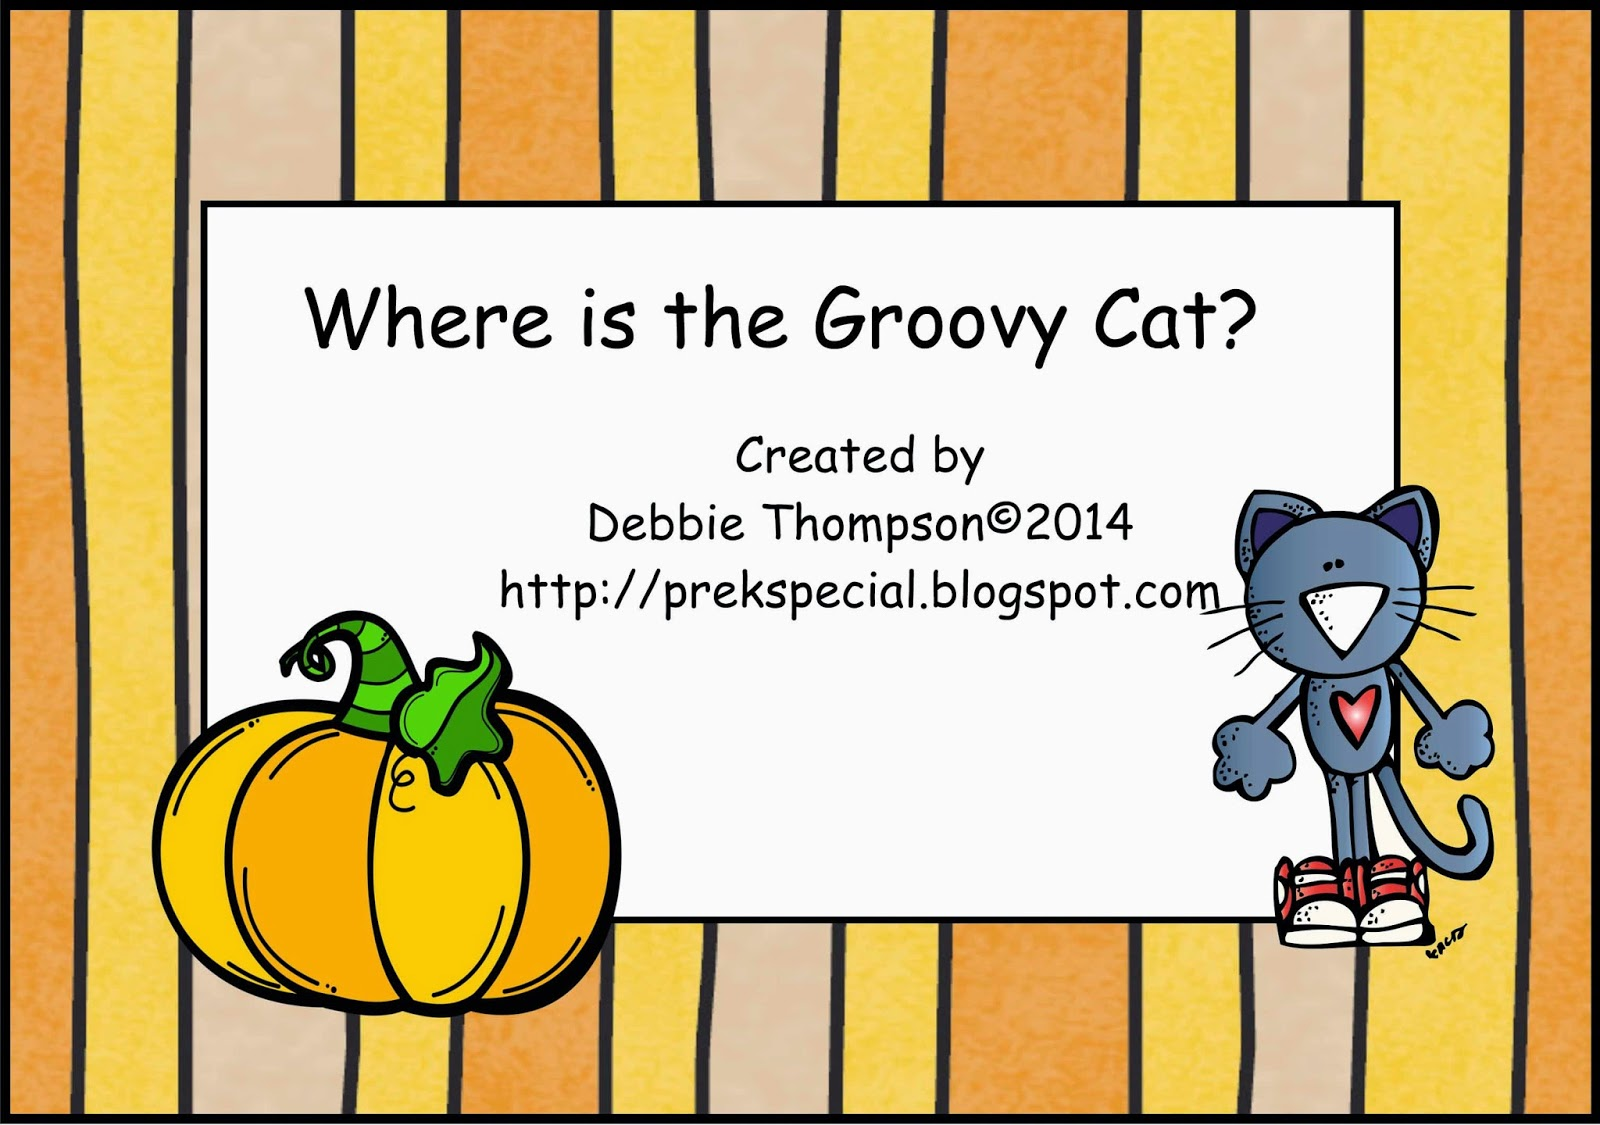 http://www.teachersnotebook.com/product/dt0621/where-is-the-groovy-cat